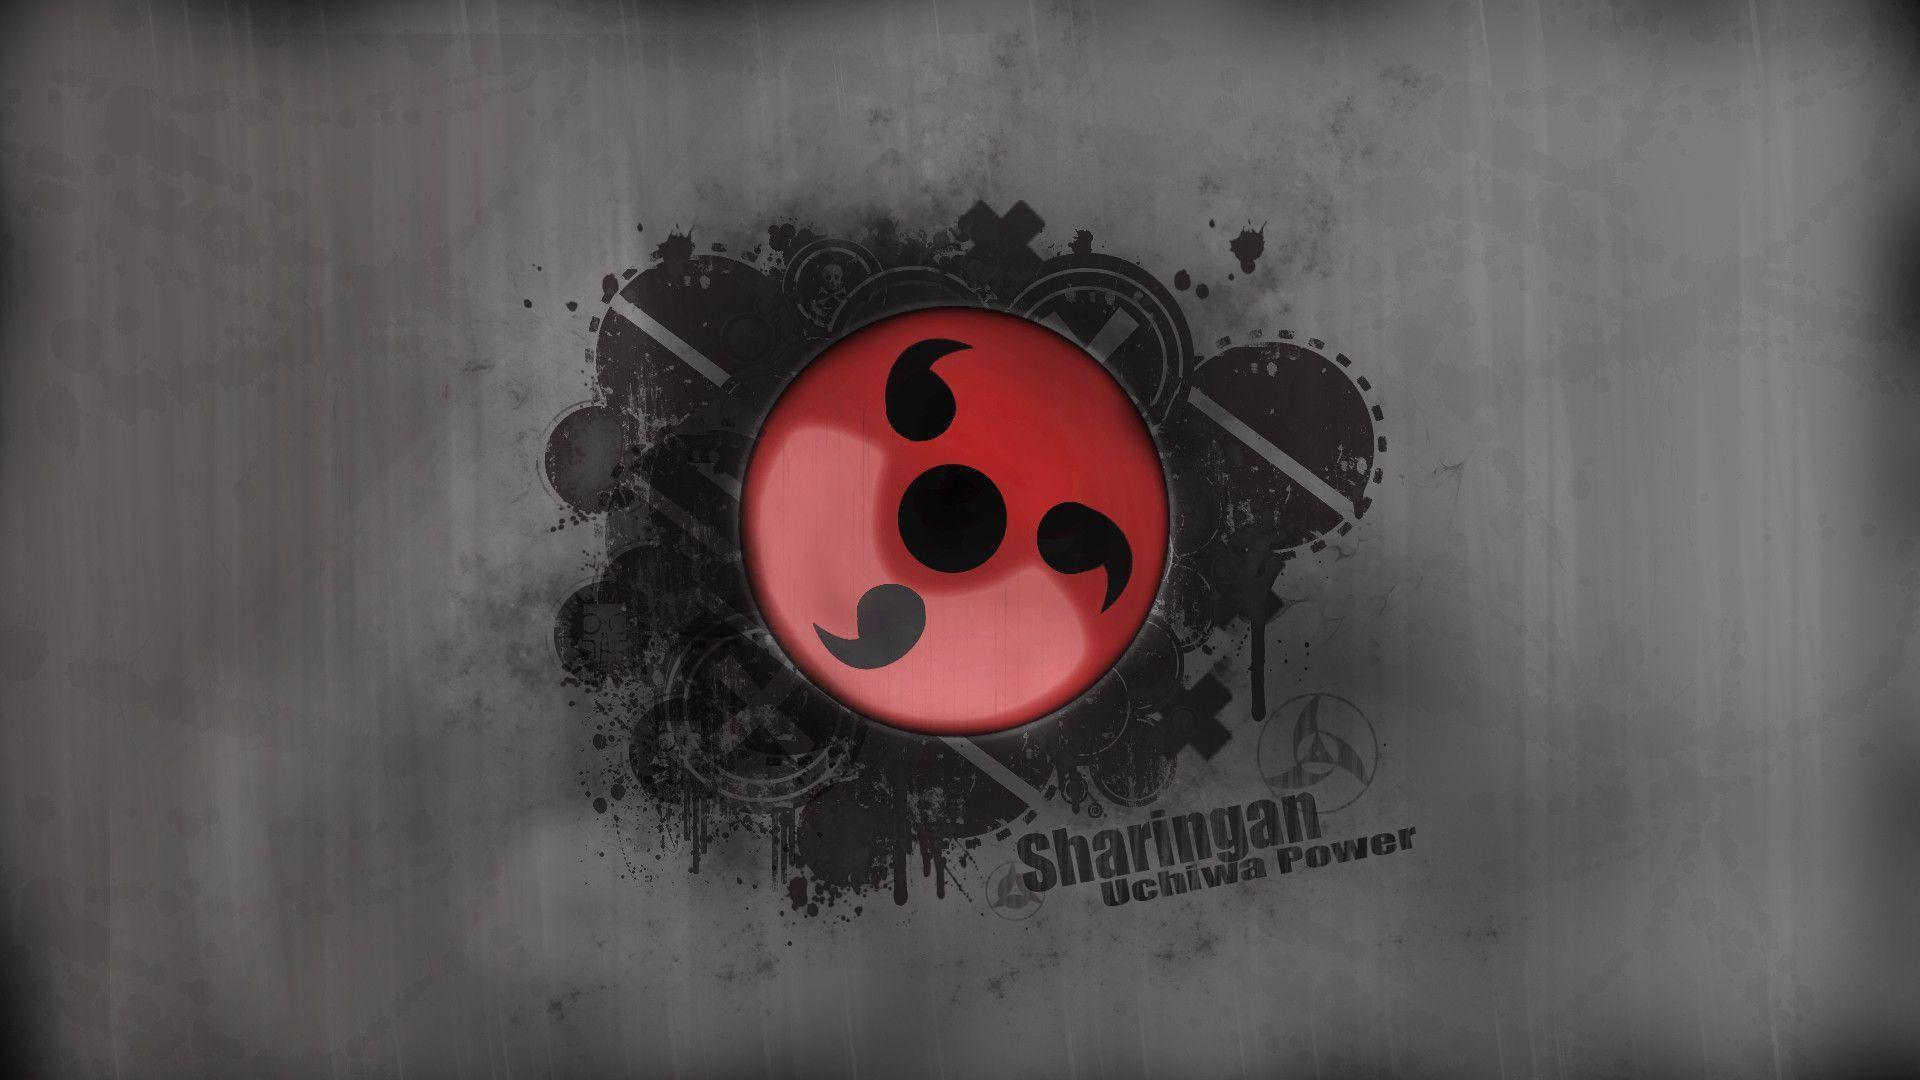 Wallpapers For > Sharingan Wallpaper Hd